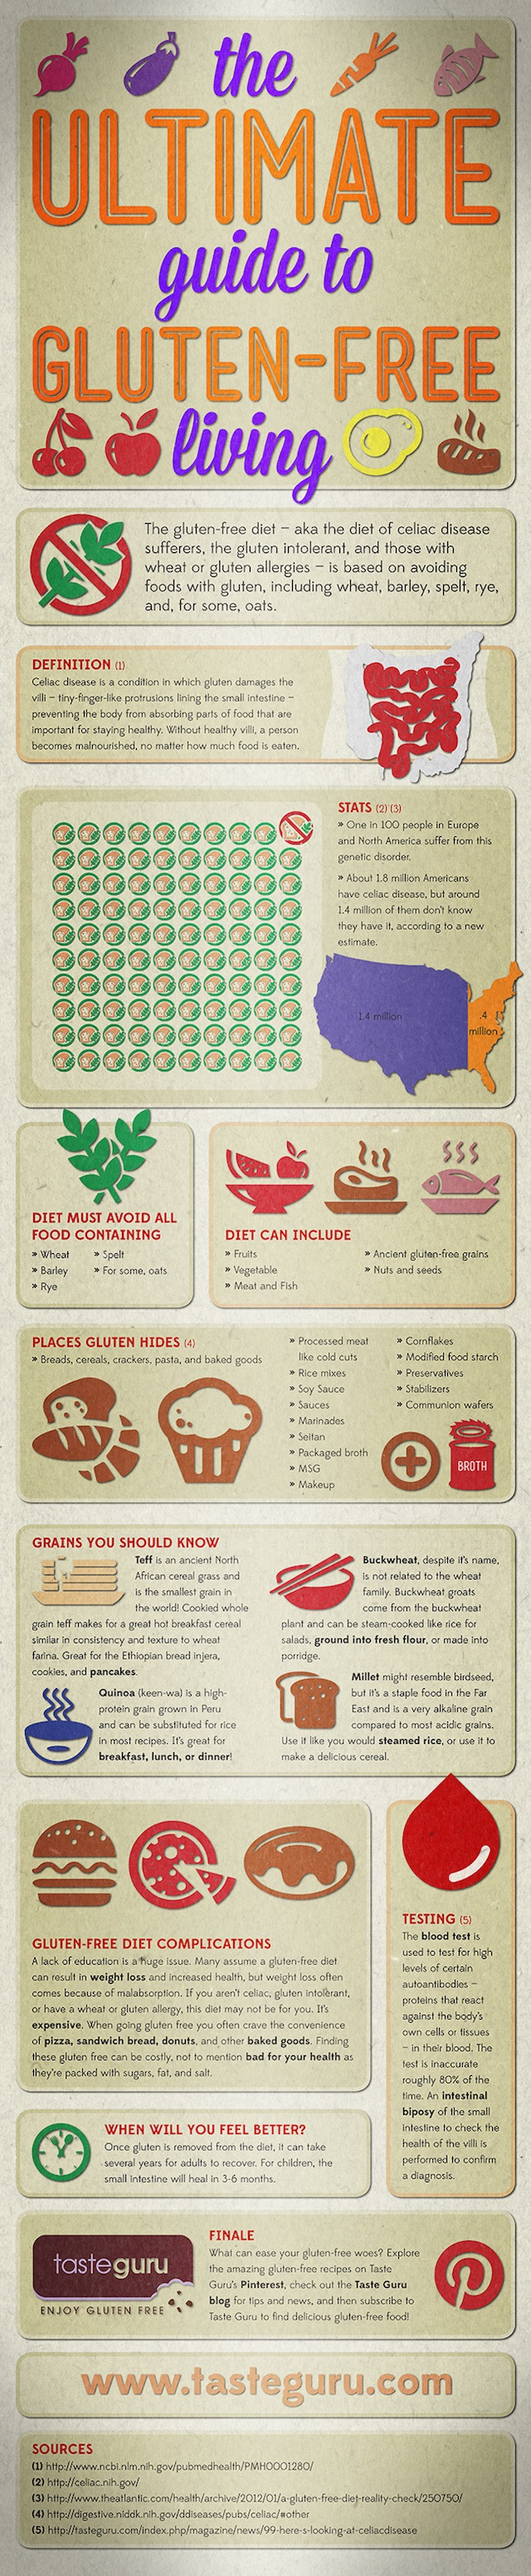 Gluten-Free Living Tips Infographic